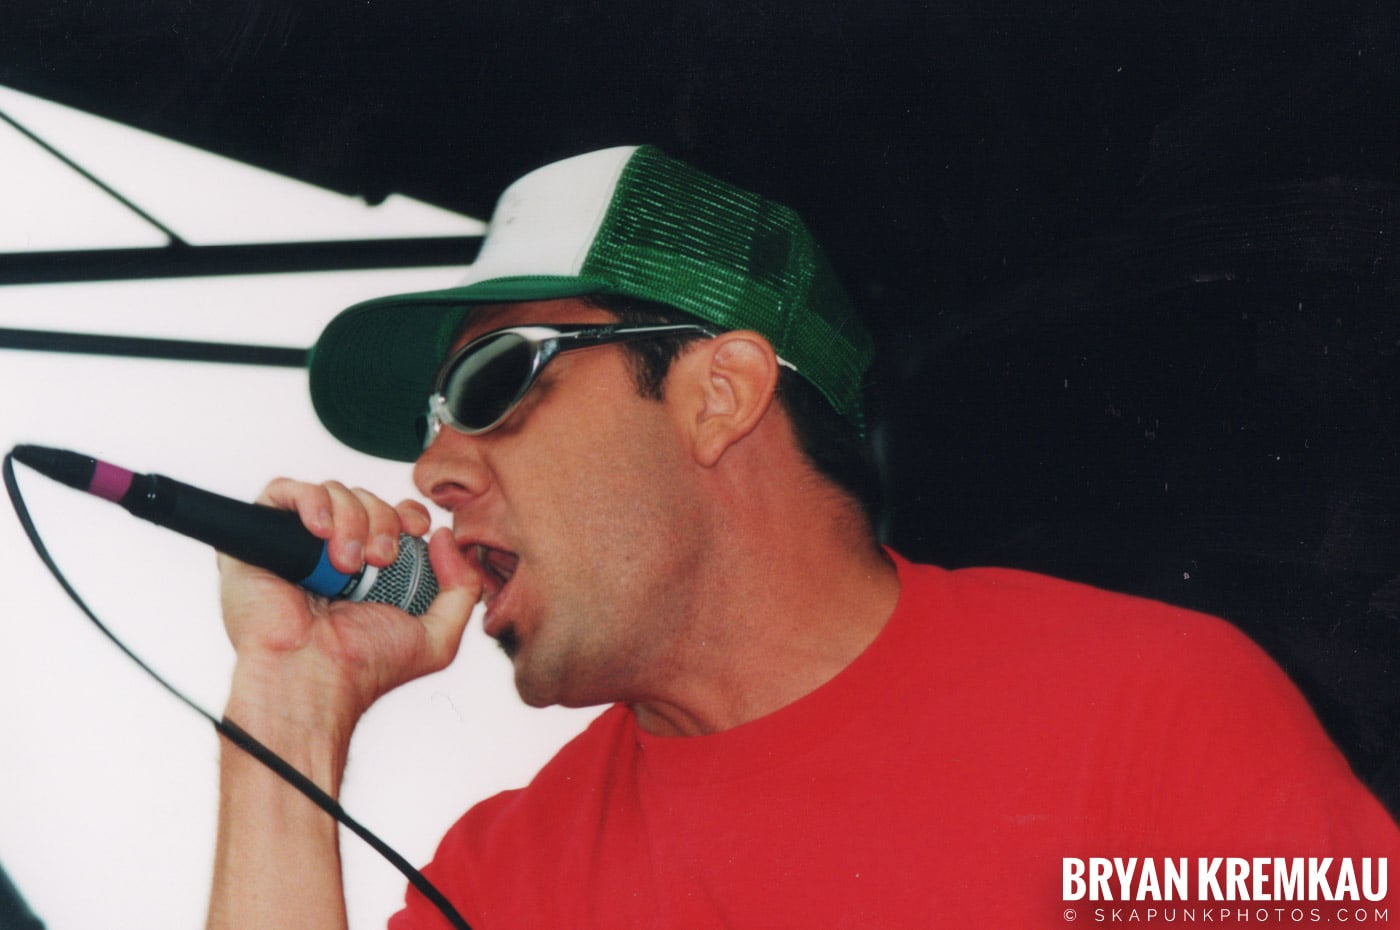 Pennywise @ Vans Warped Tour, Randall's Island, NYC - 8.4.01 (10)